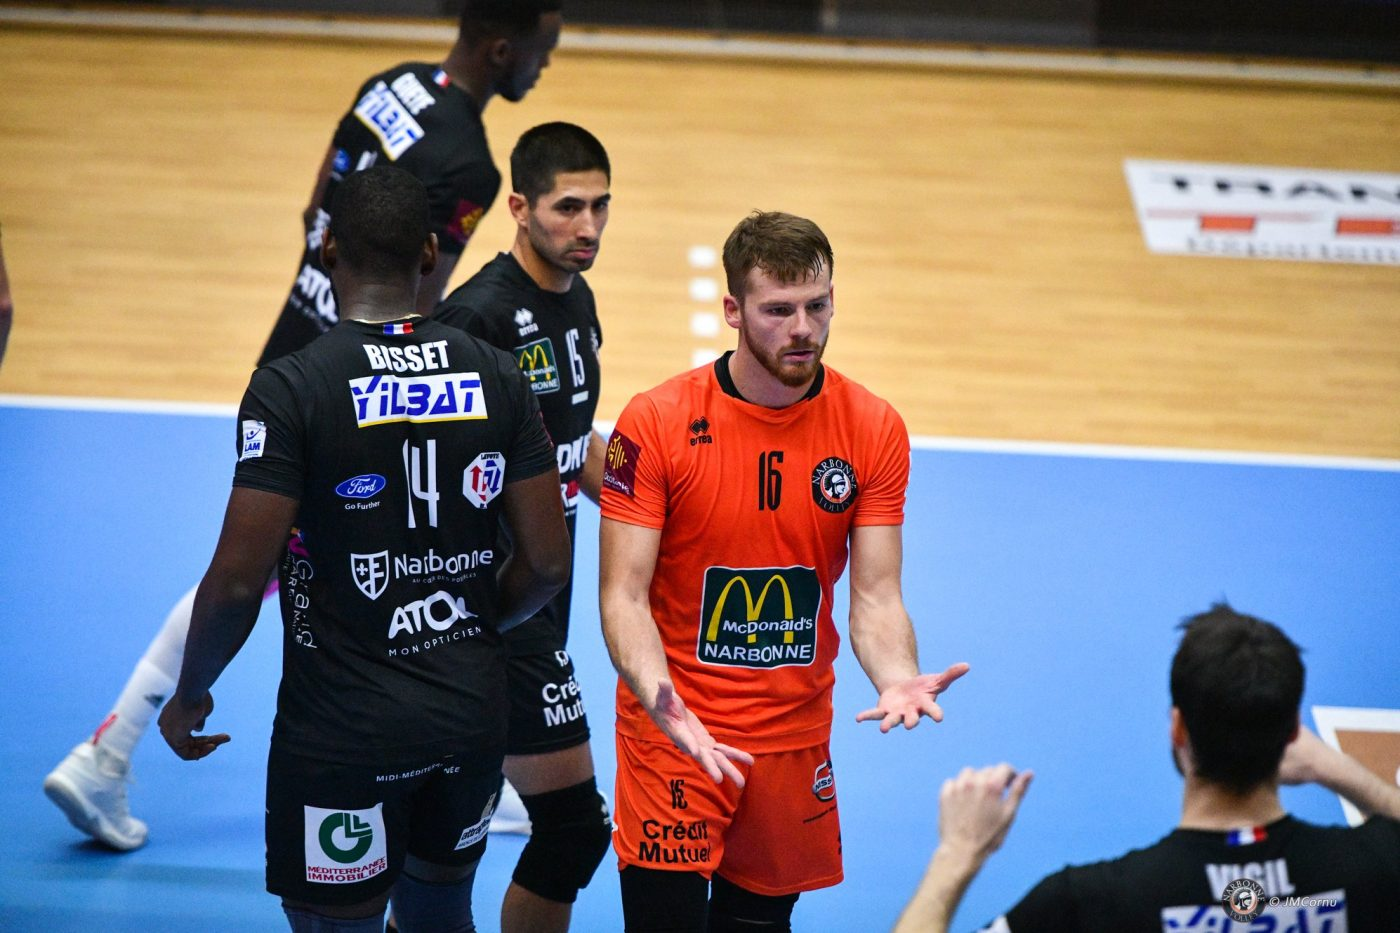 maillot-volley-LAM-2019-2020-Narbonne-errea-1